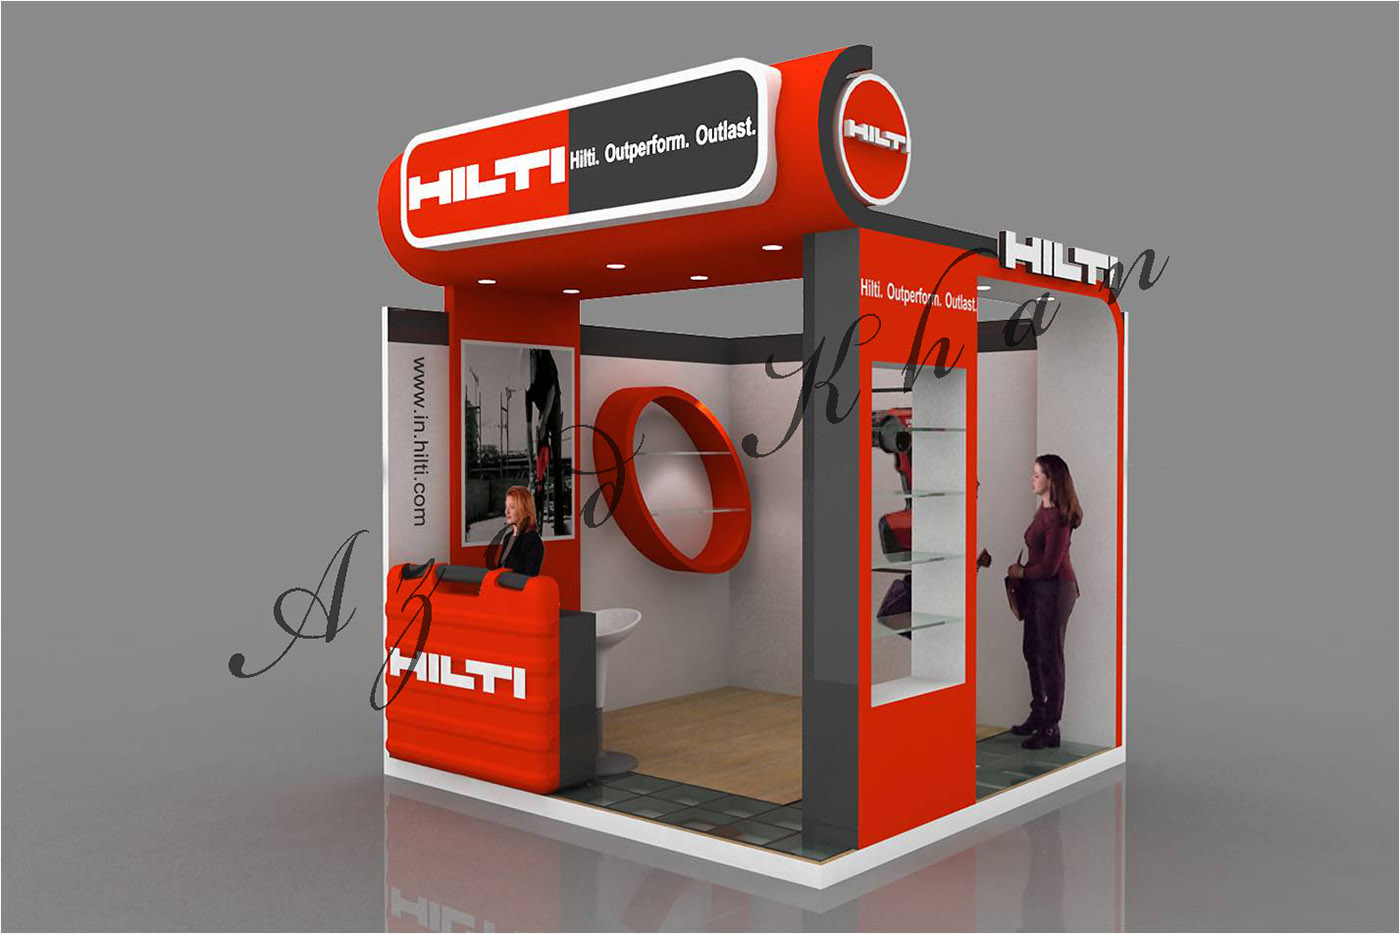 Exhibition Stall On Behance : Hilti stall design on behance